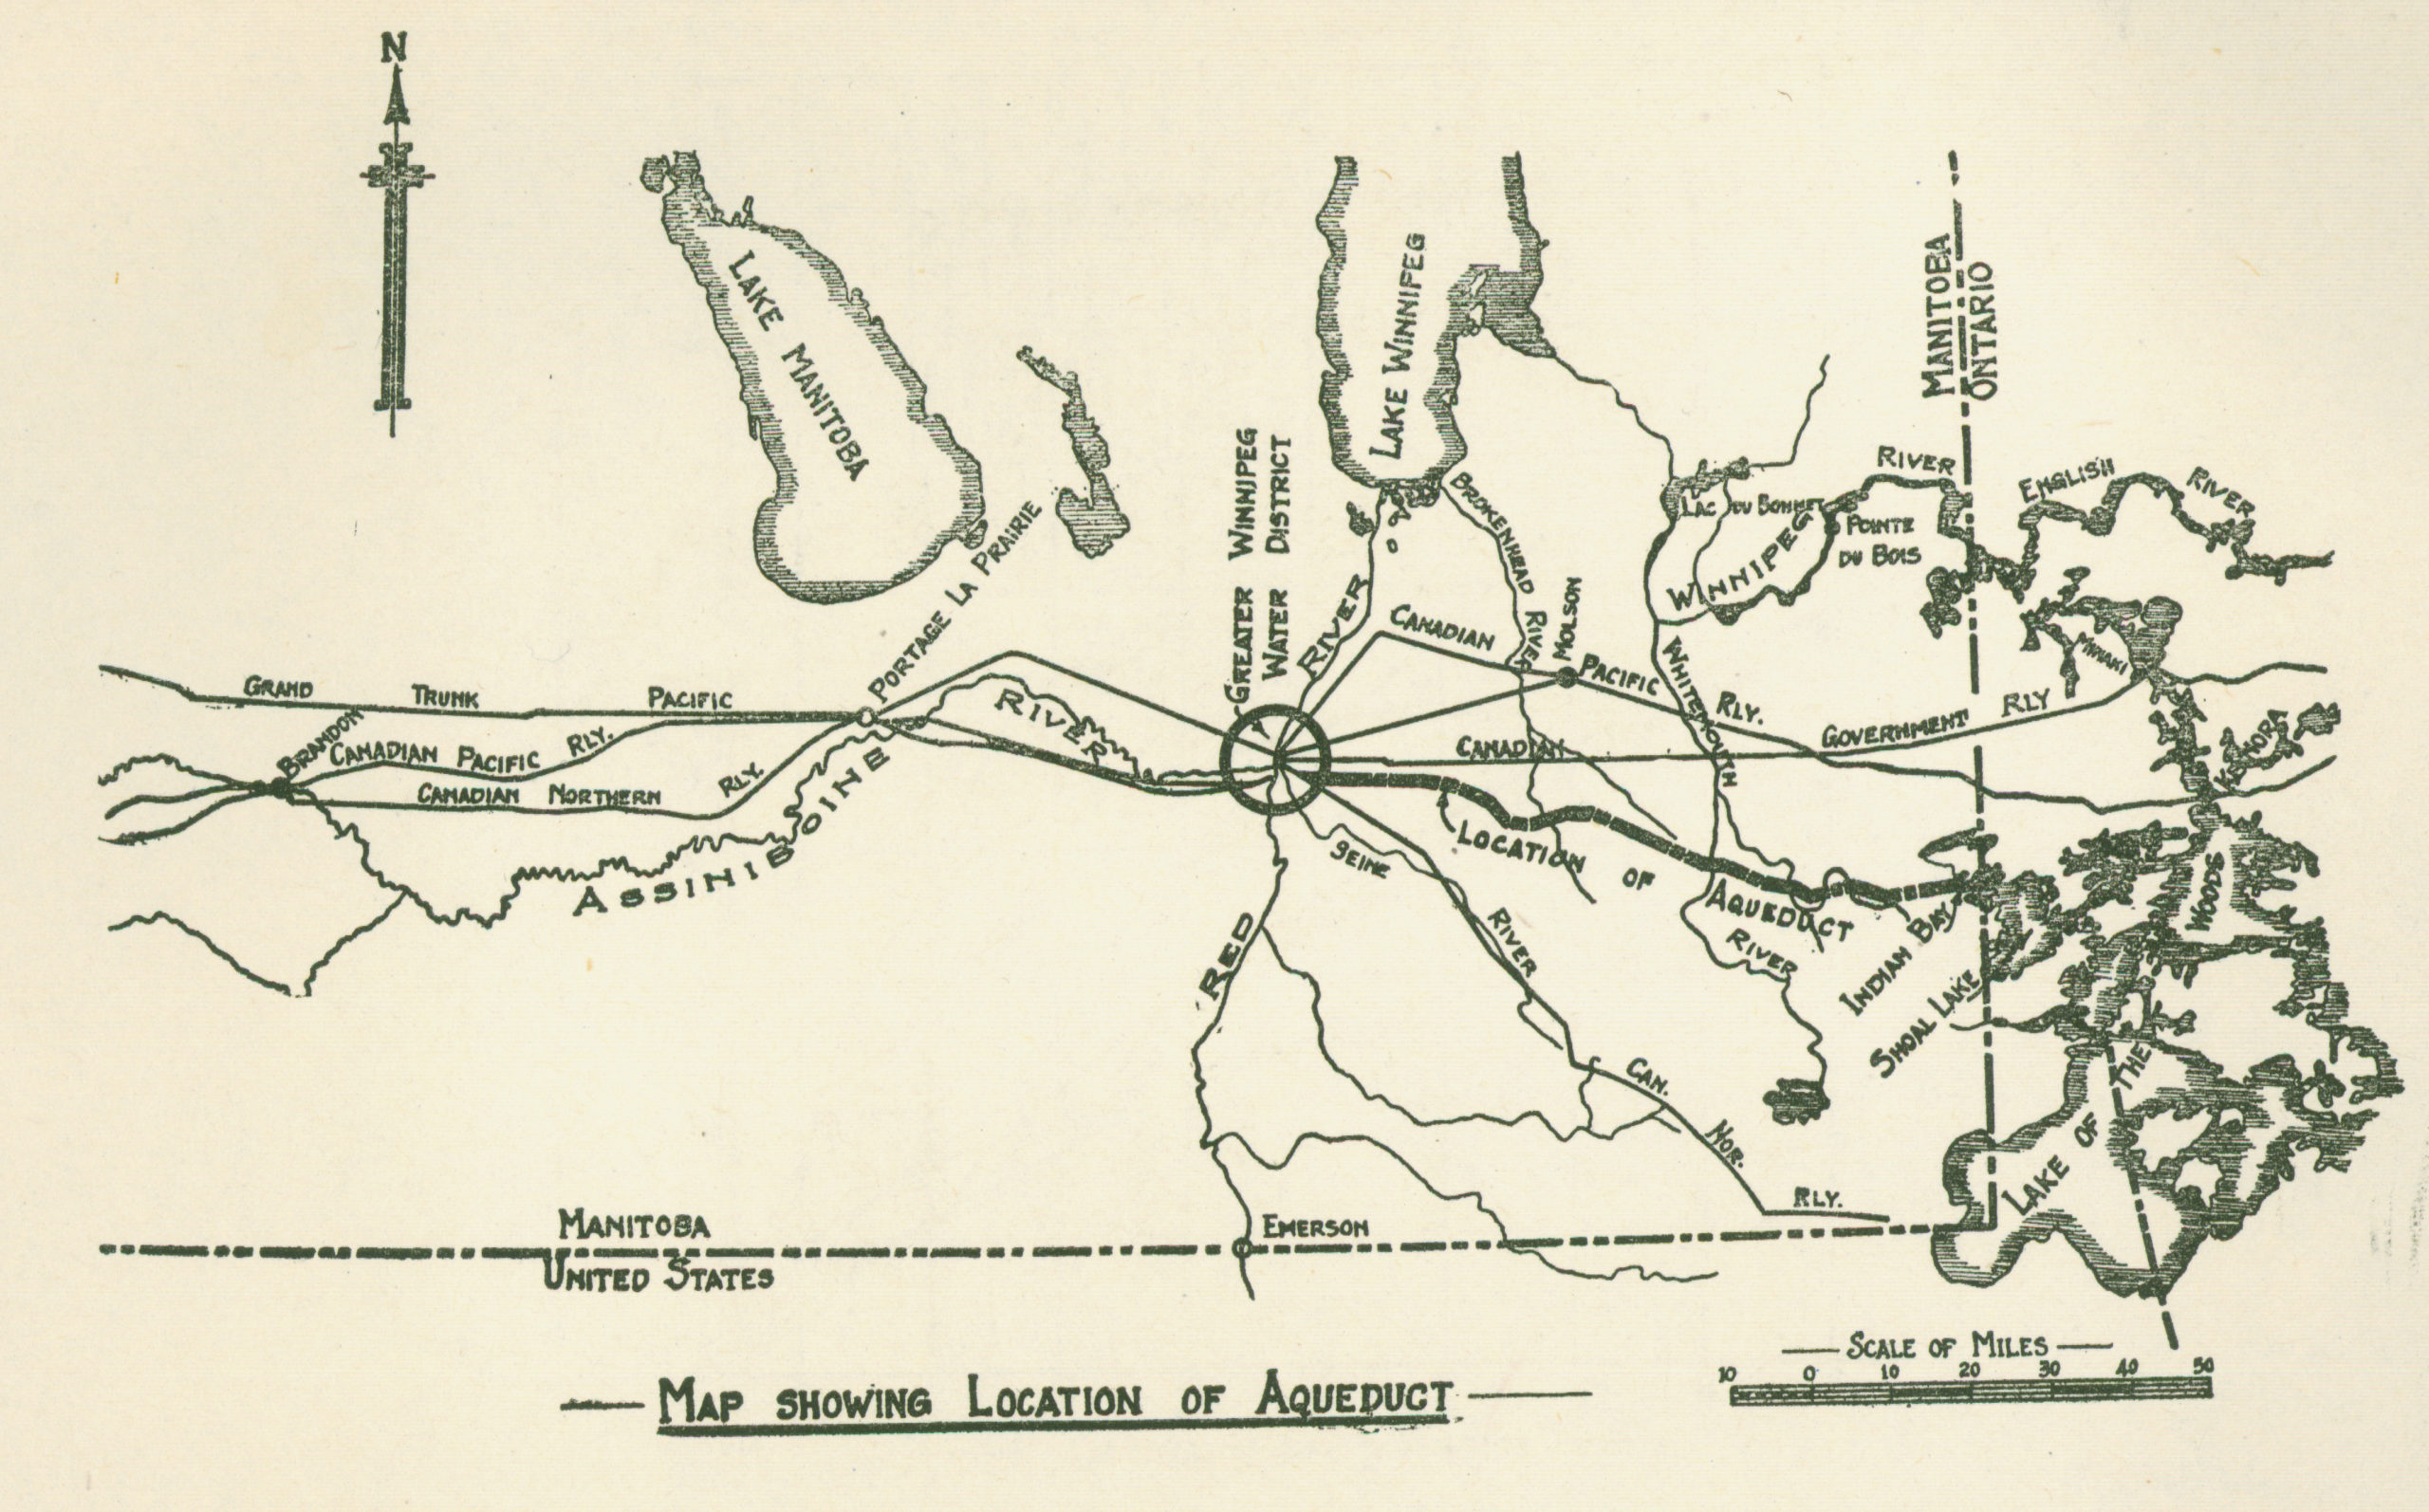 Map showing a sprawl of roads and railways advancing from Winnipeg.